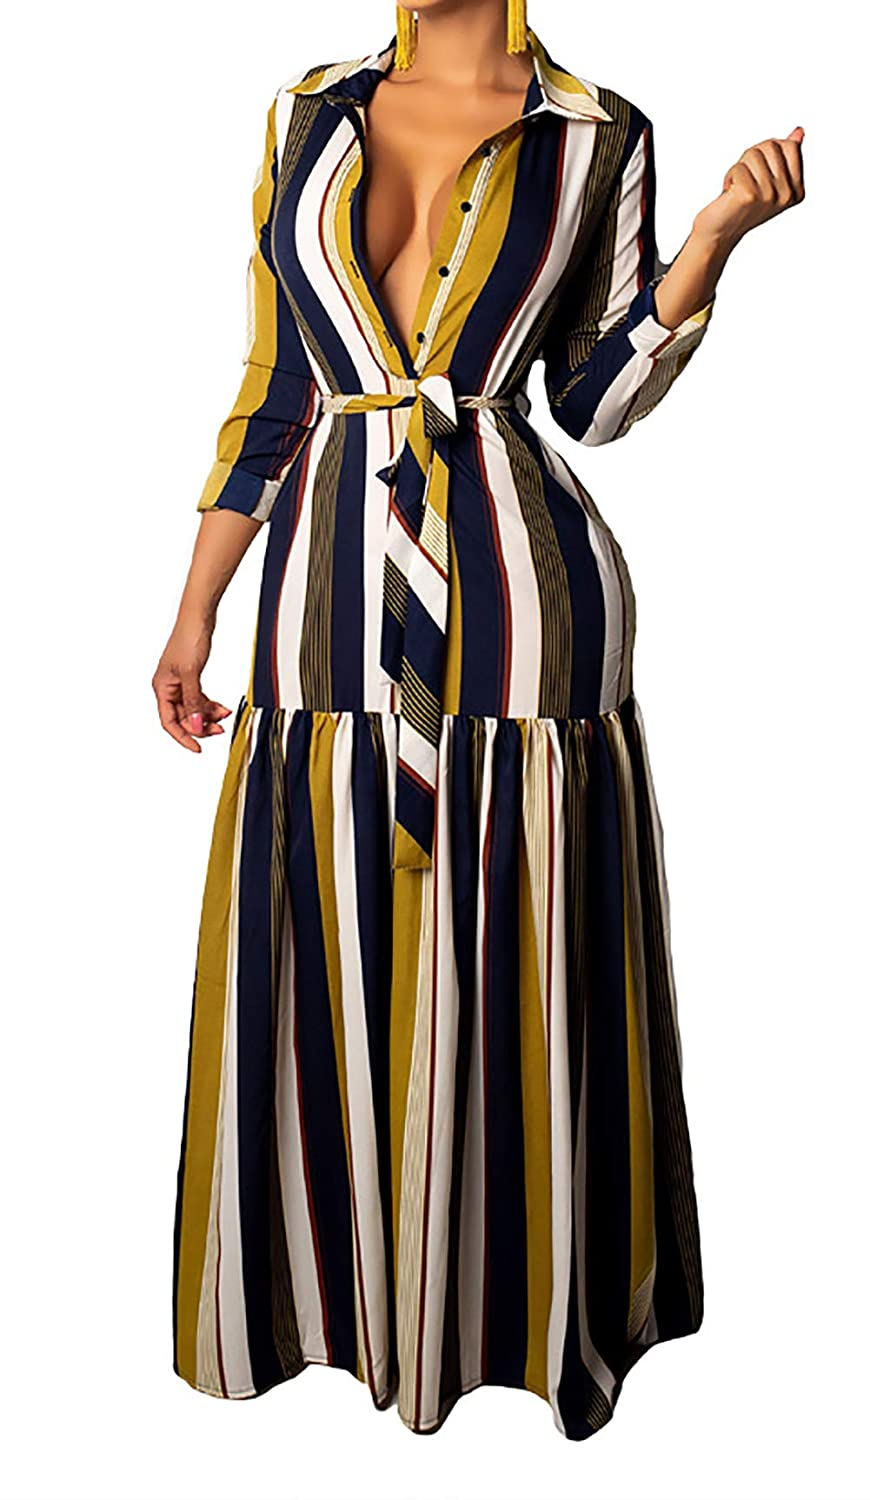 Voghtic Women 2 Piece Outfits Crop Top and High Waist Long Pants Jumpsuit Rompers Tracksuit